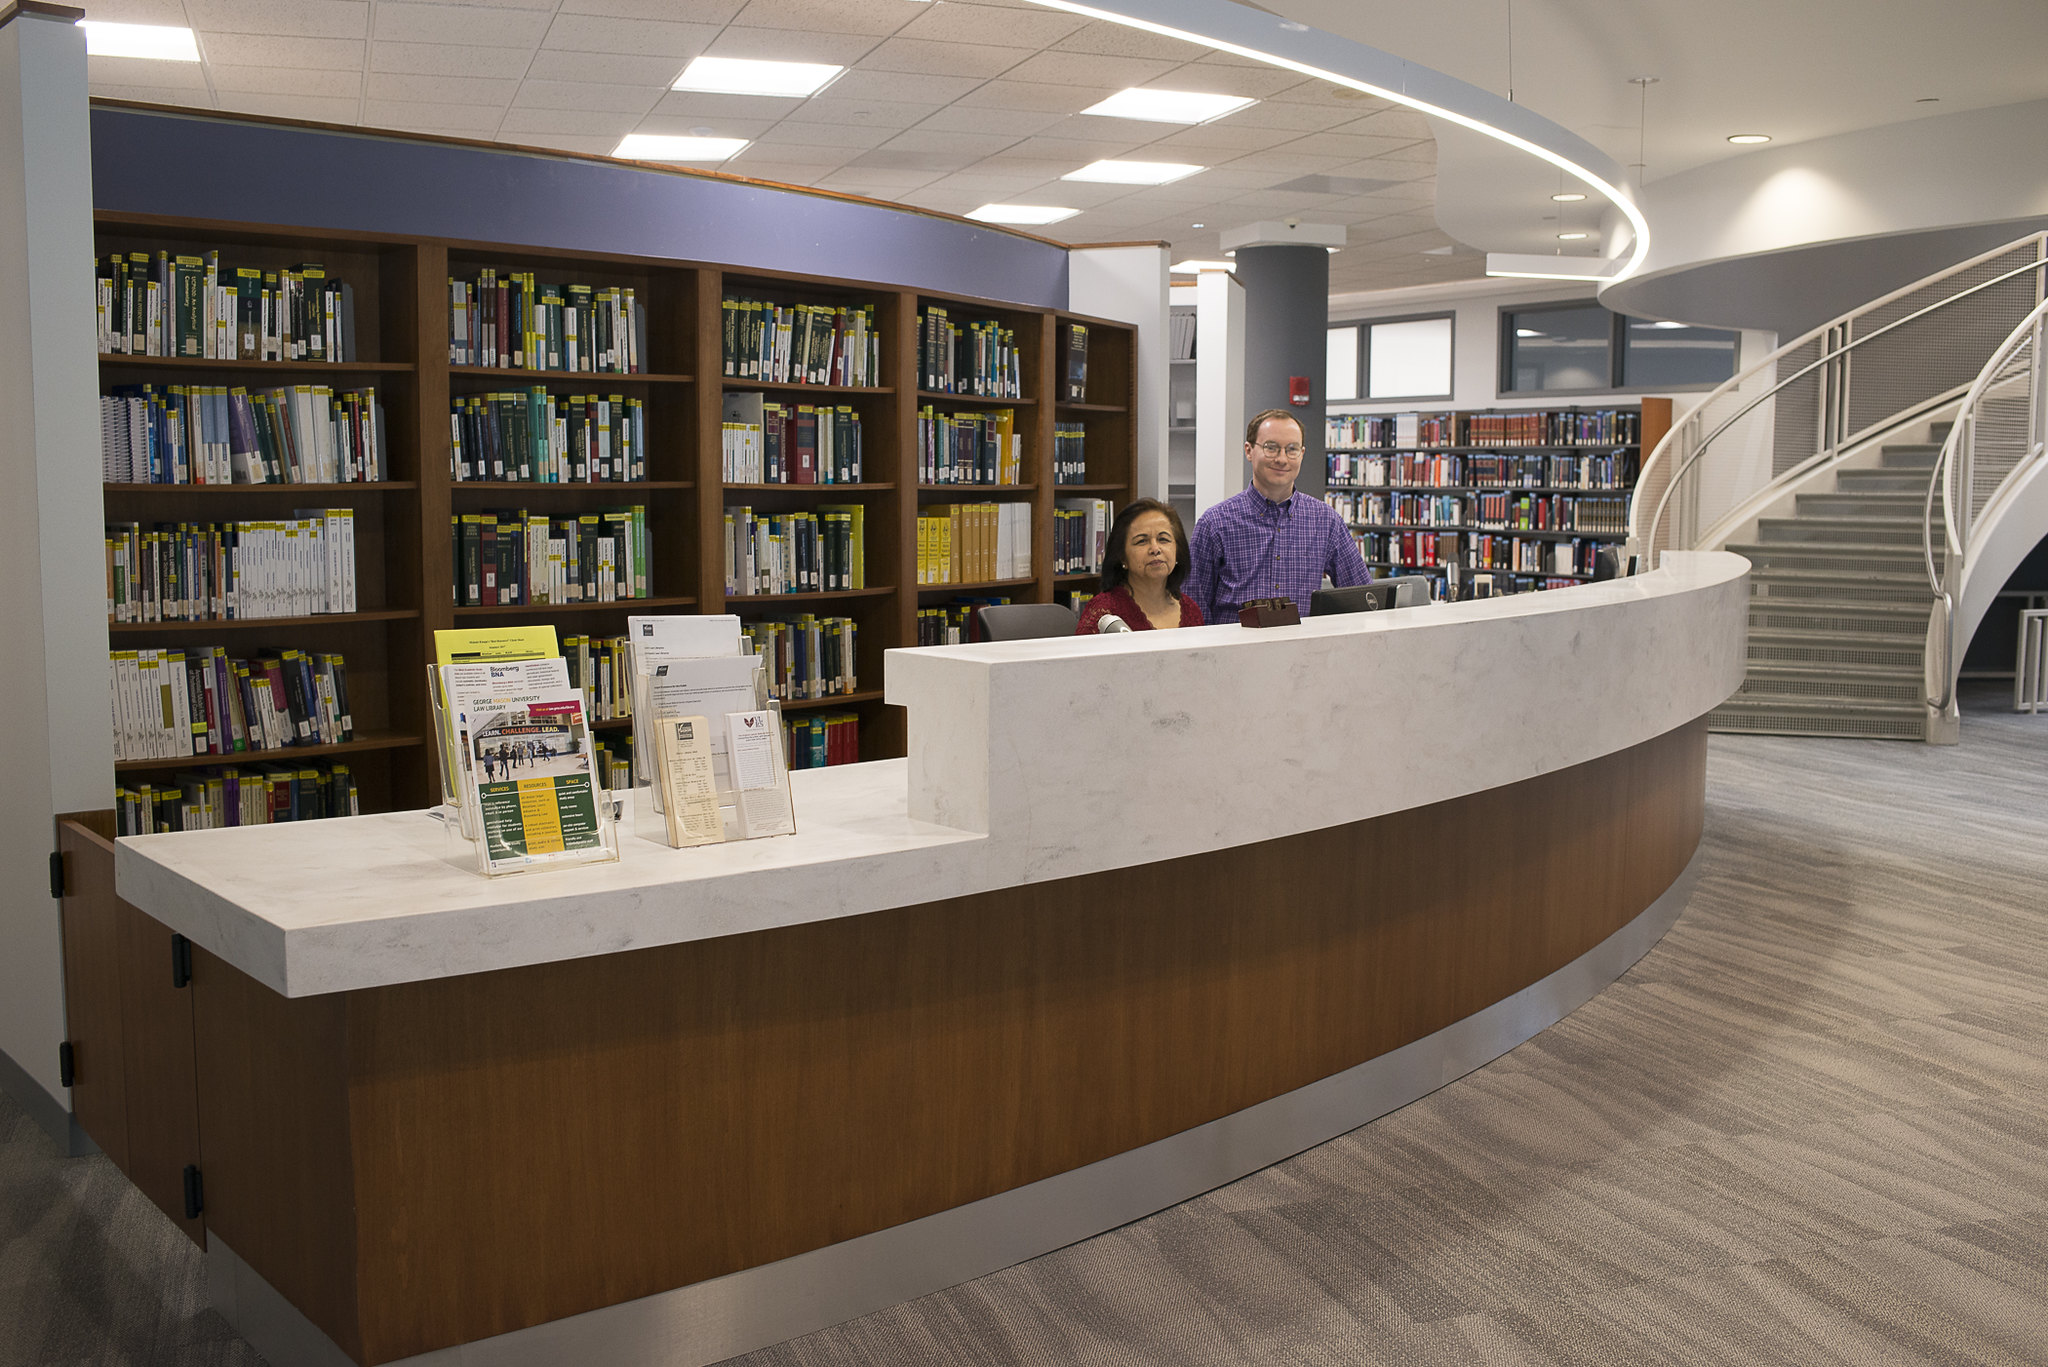 Library circulation desk with students presnt